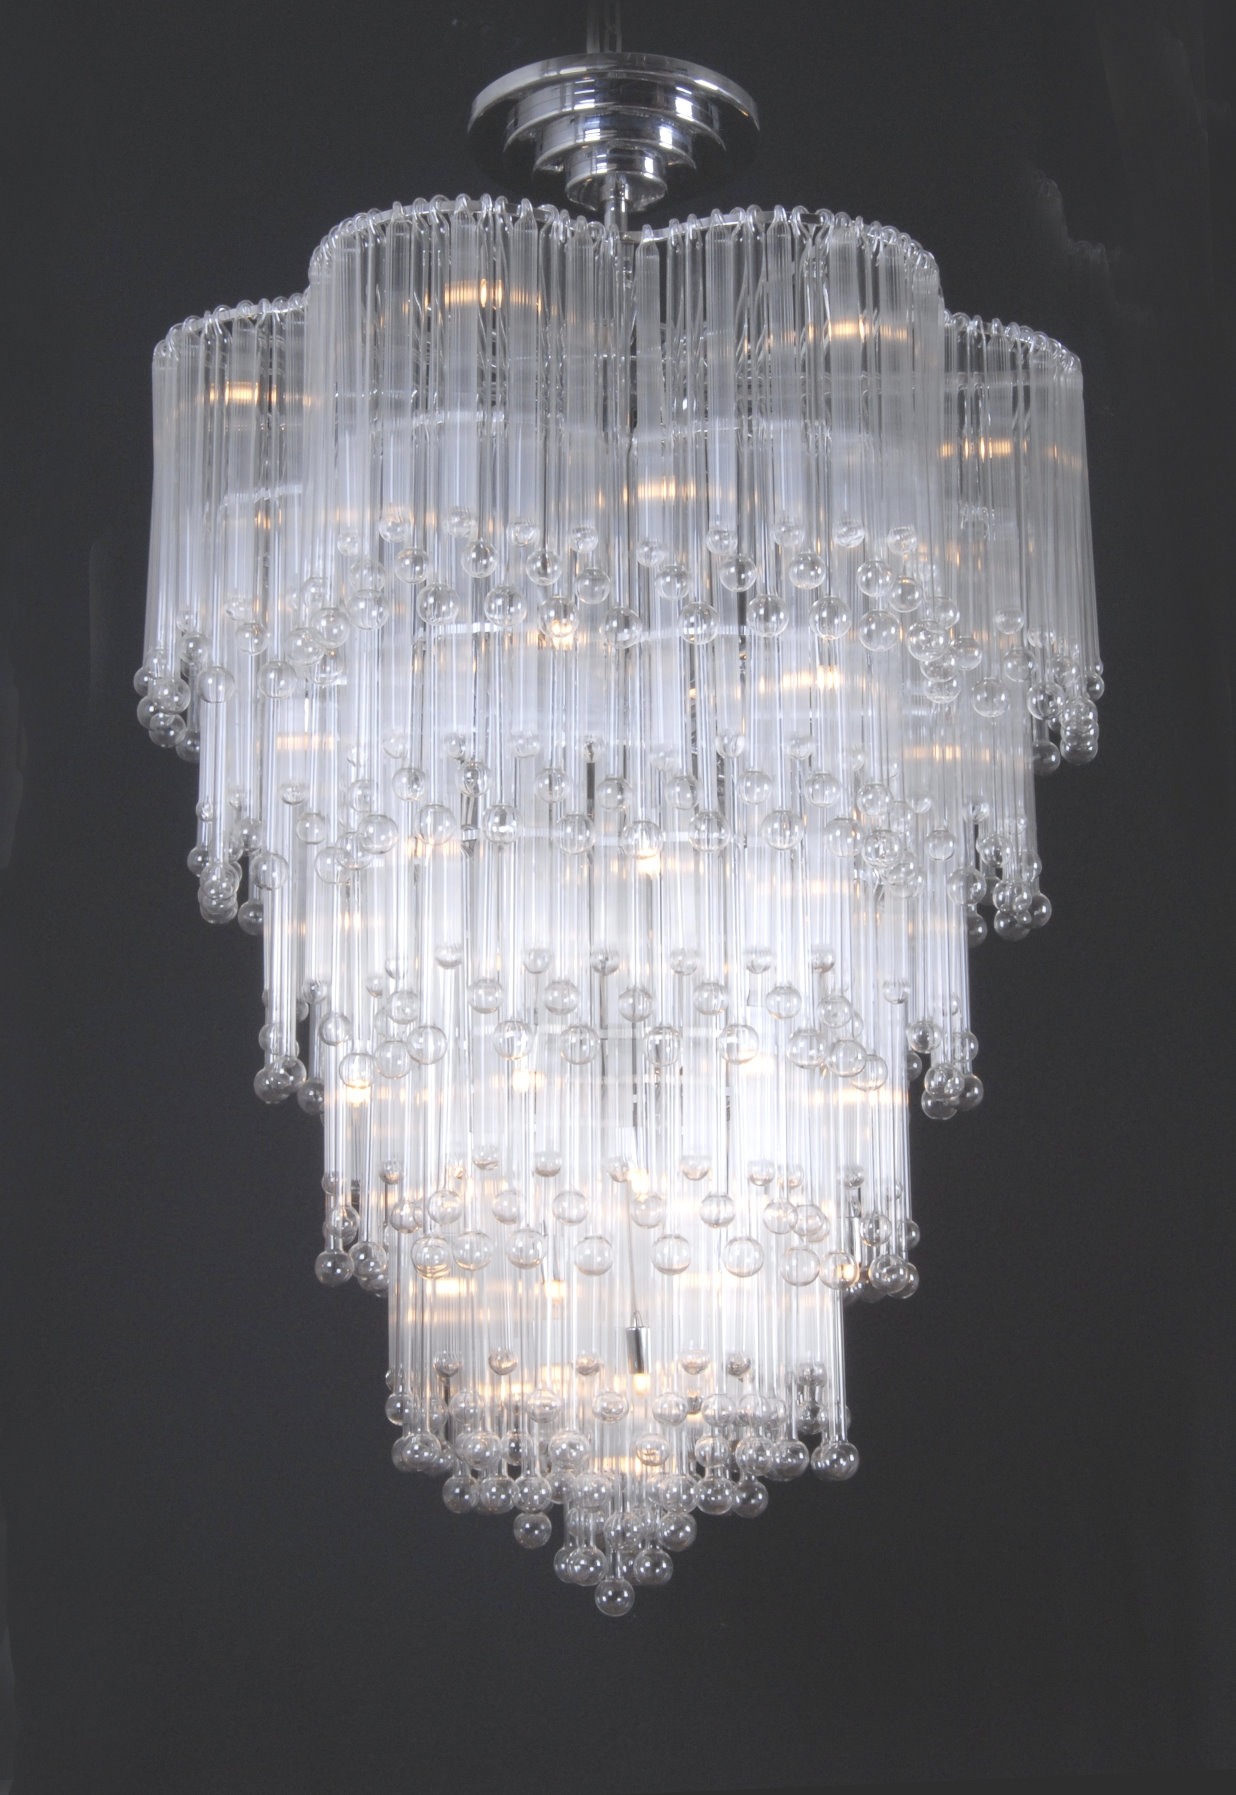 Modern Glass Chandelier Lighting Furniture Ideas With Regard To Glass Chandelier (#6 of 12)